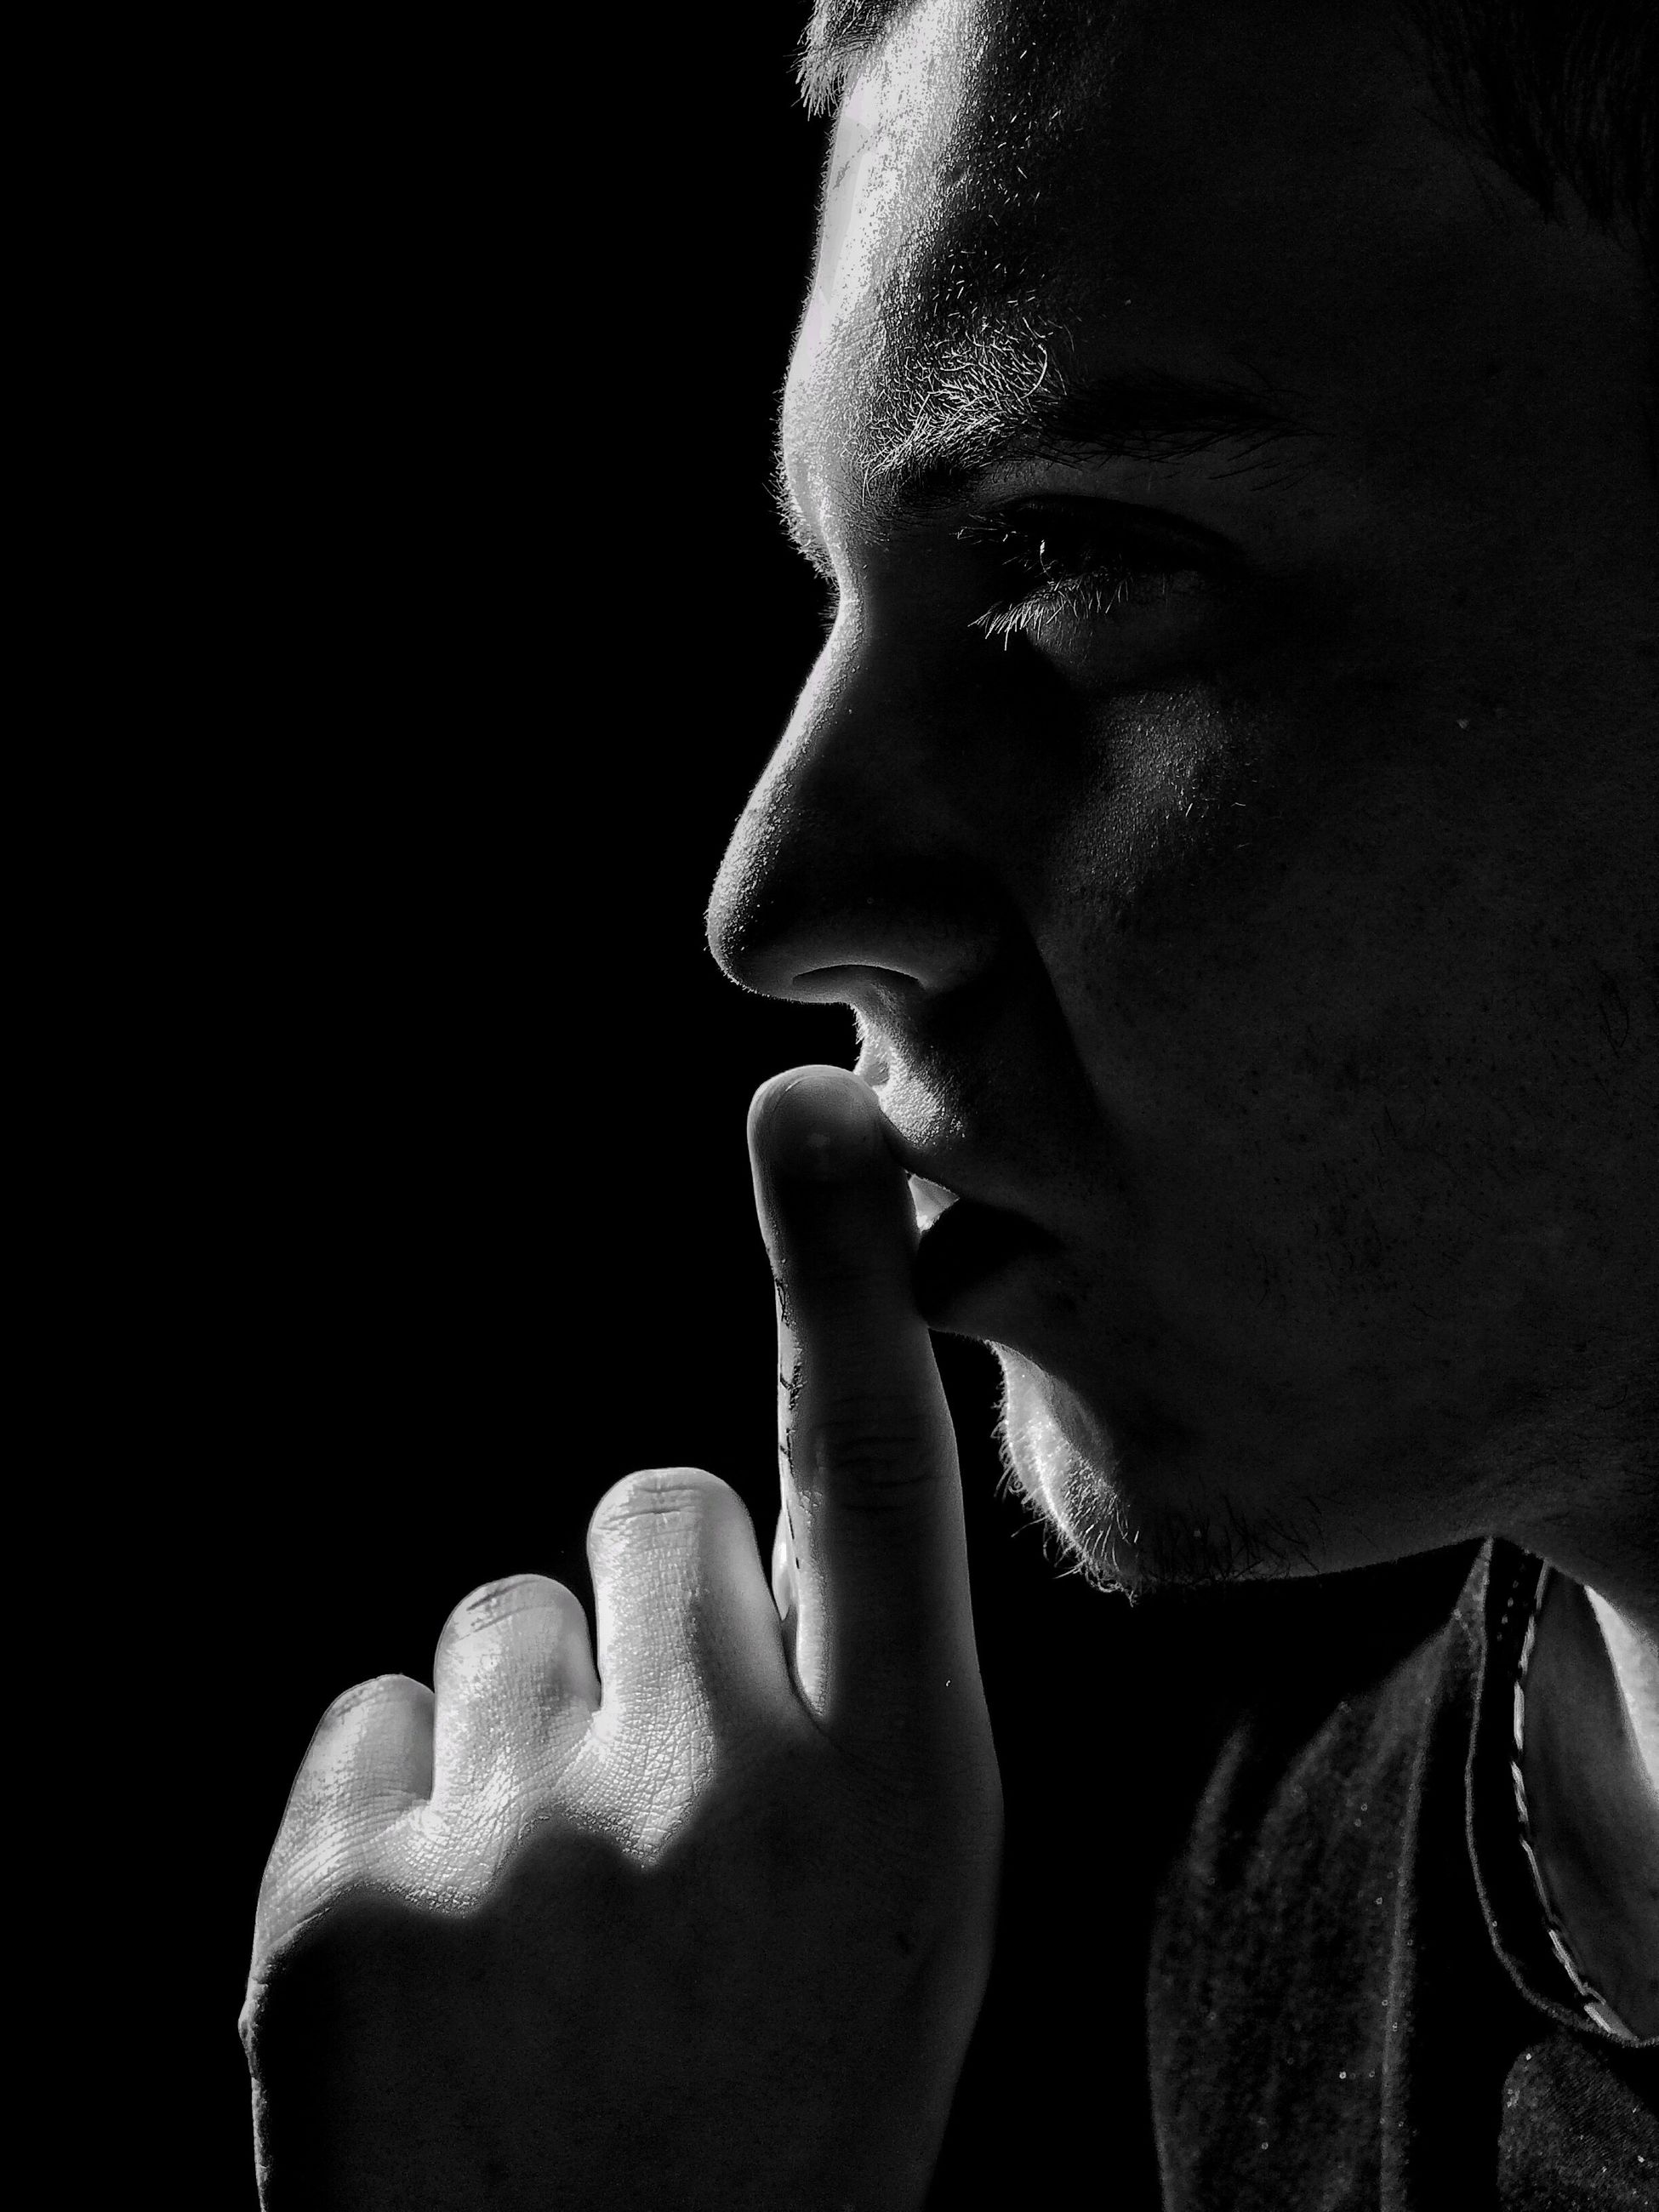 black background, studio shot, headshot, lifestyles, close-up, young adult, human face, person, young men, leisure activity, serious, head and shoulders, front view, copy space, contemplation, indoors